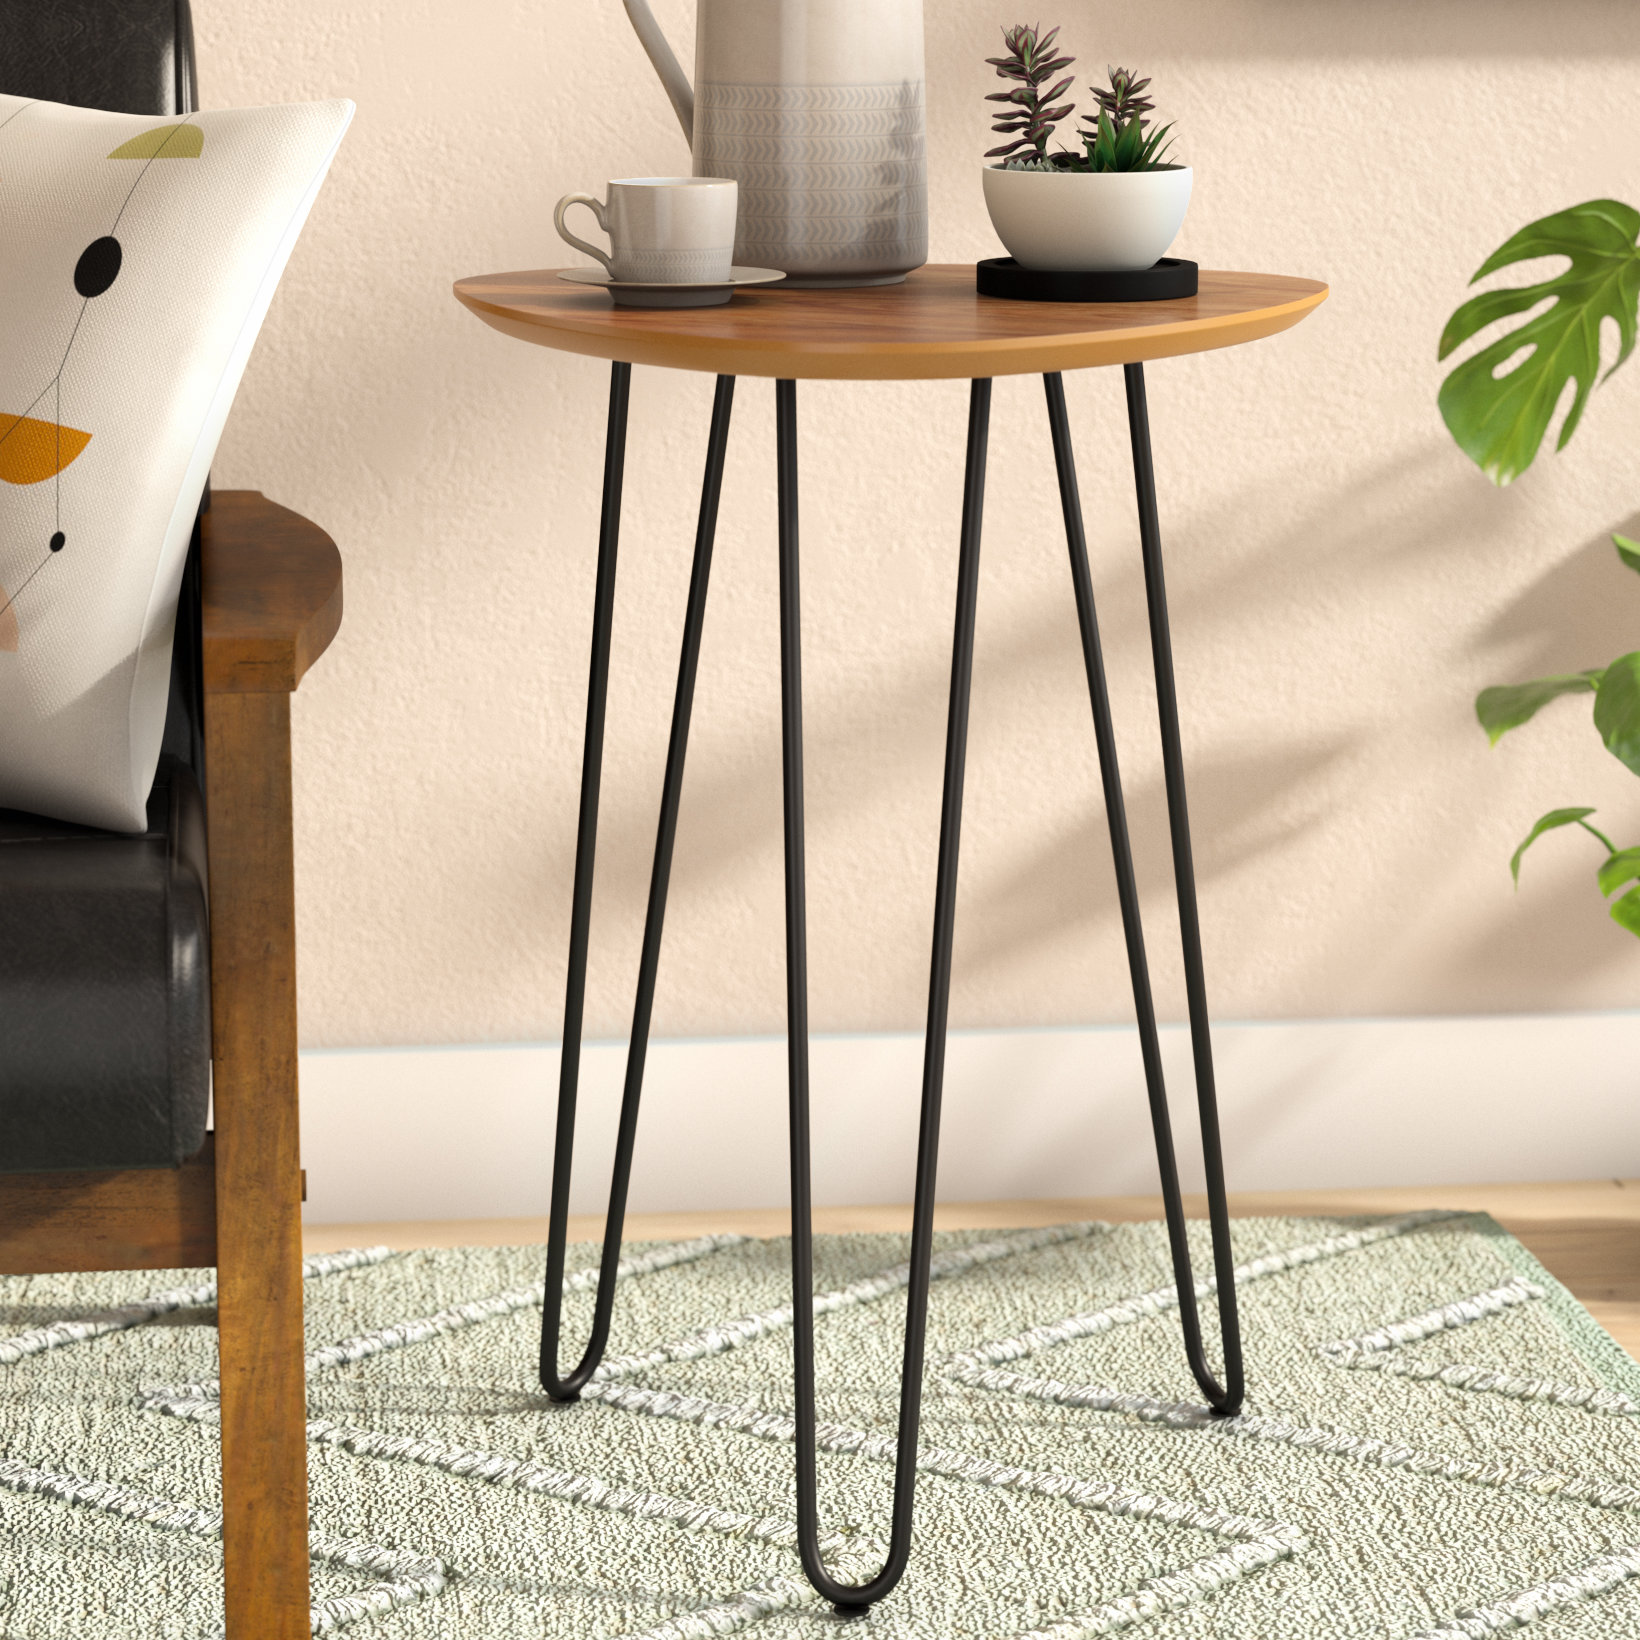 spindle leg side table goldner hairpin wood end slab accent tiffany style lamp pedestal base black half moon glass top couch narrow mirrored console pier one outdoor umbrellas